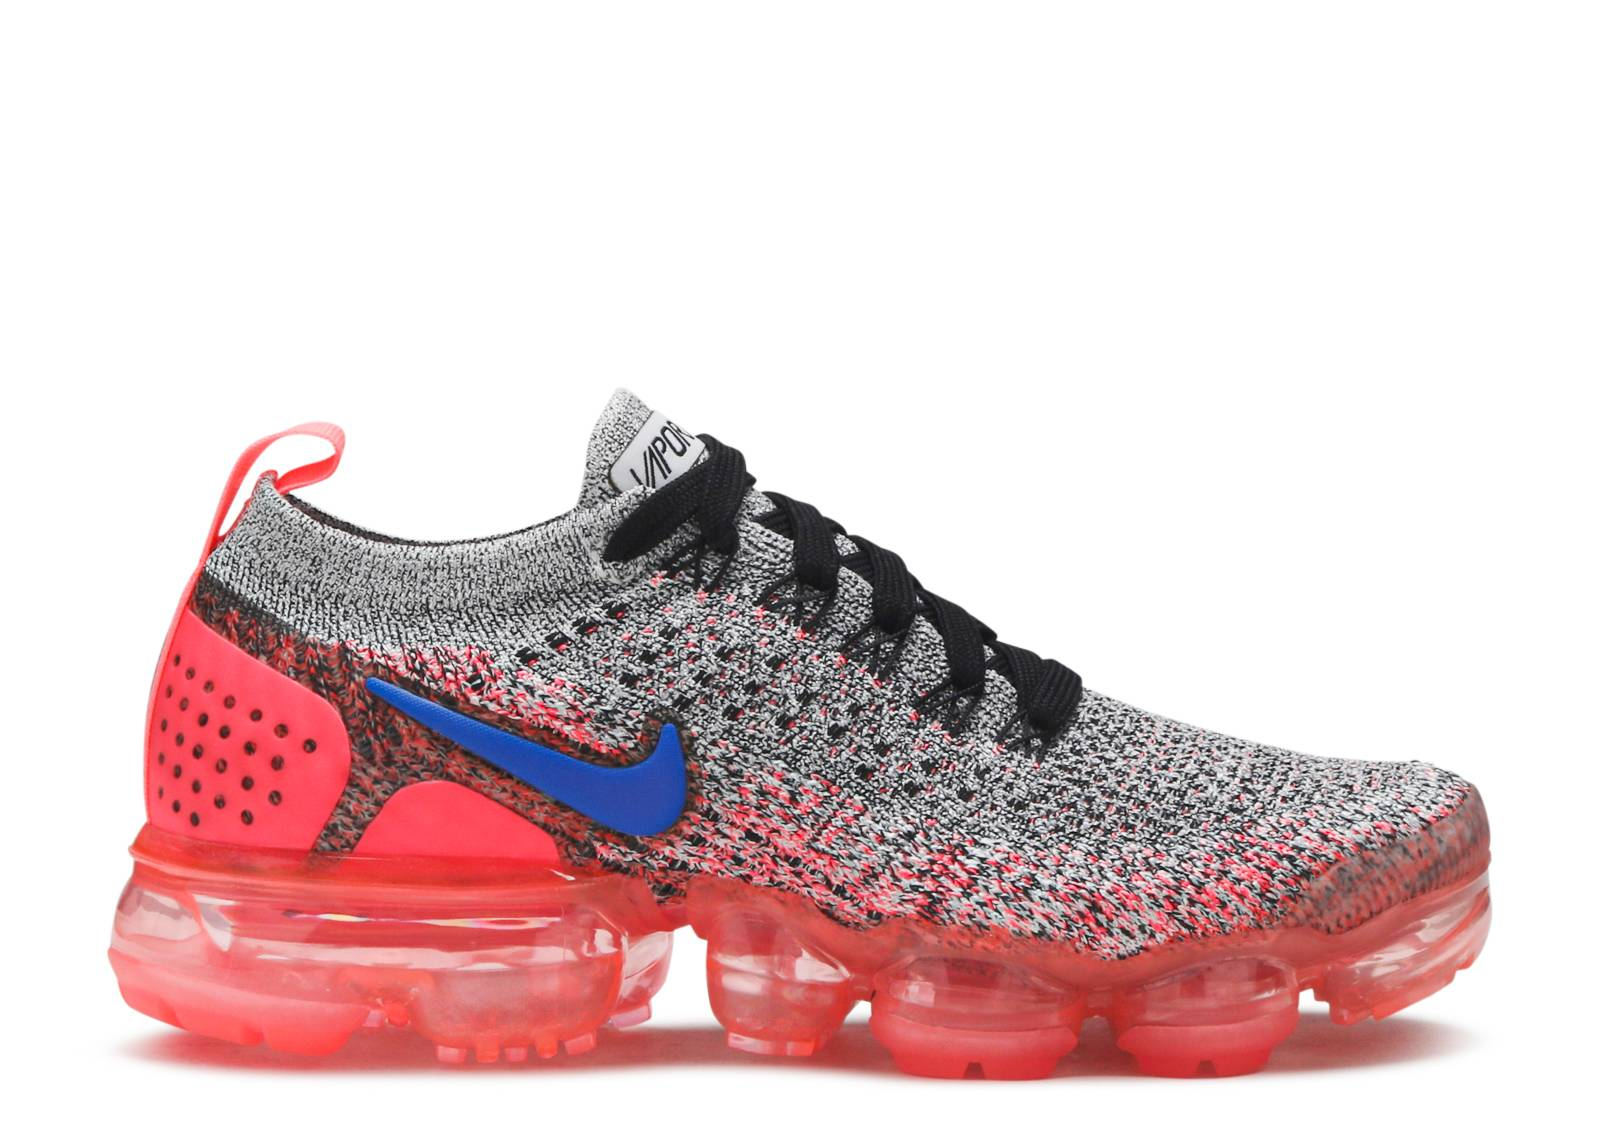 nike vapour max flyknit 2